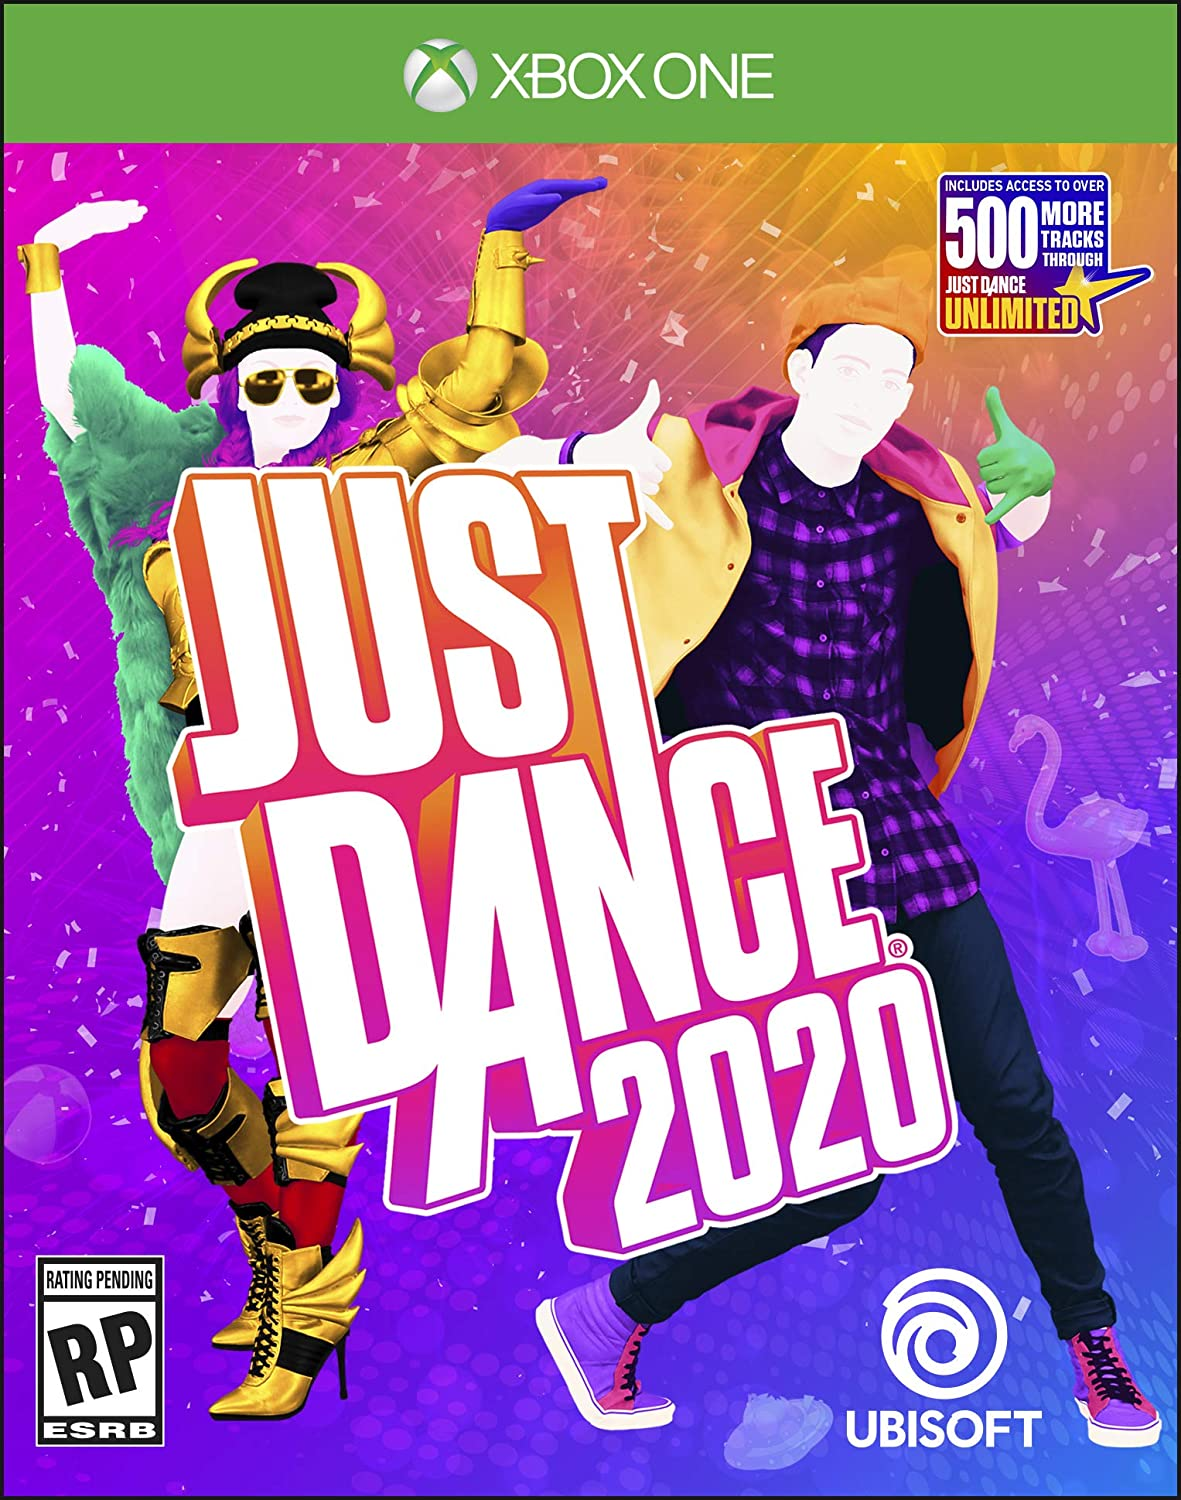 Xbox Gold Games October 2020.Amazon Com Just Dance 2020 Xbox One Standard Edition